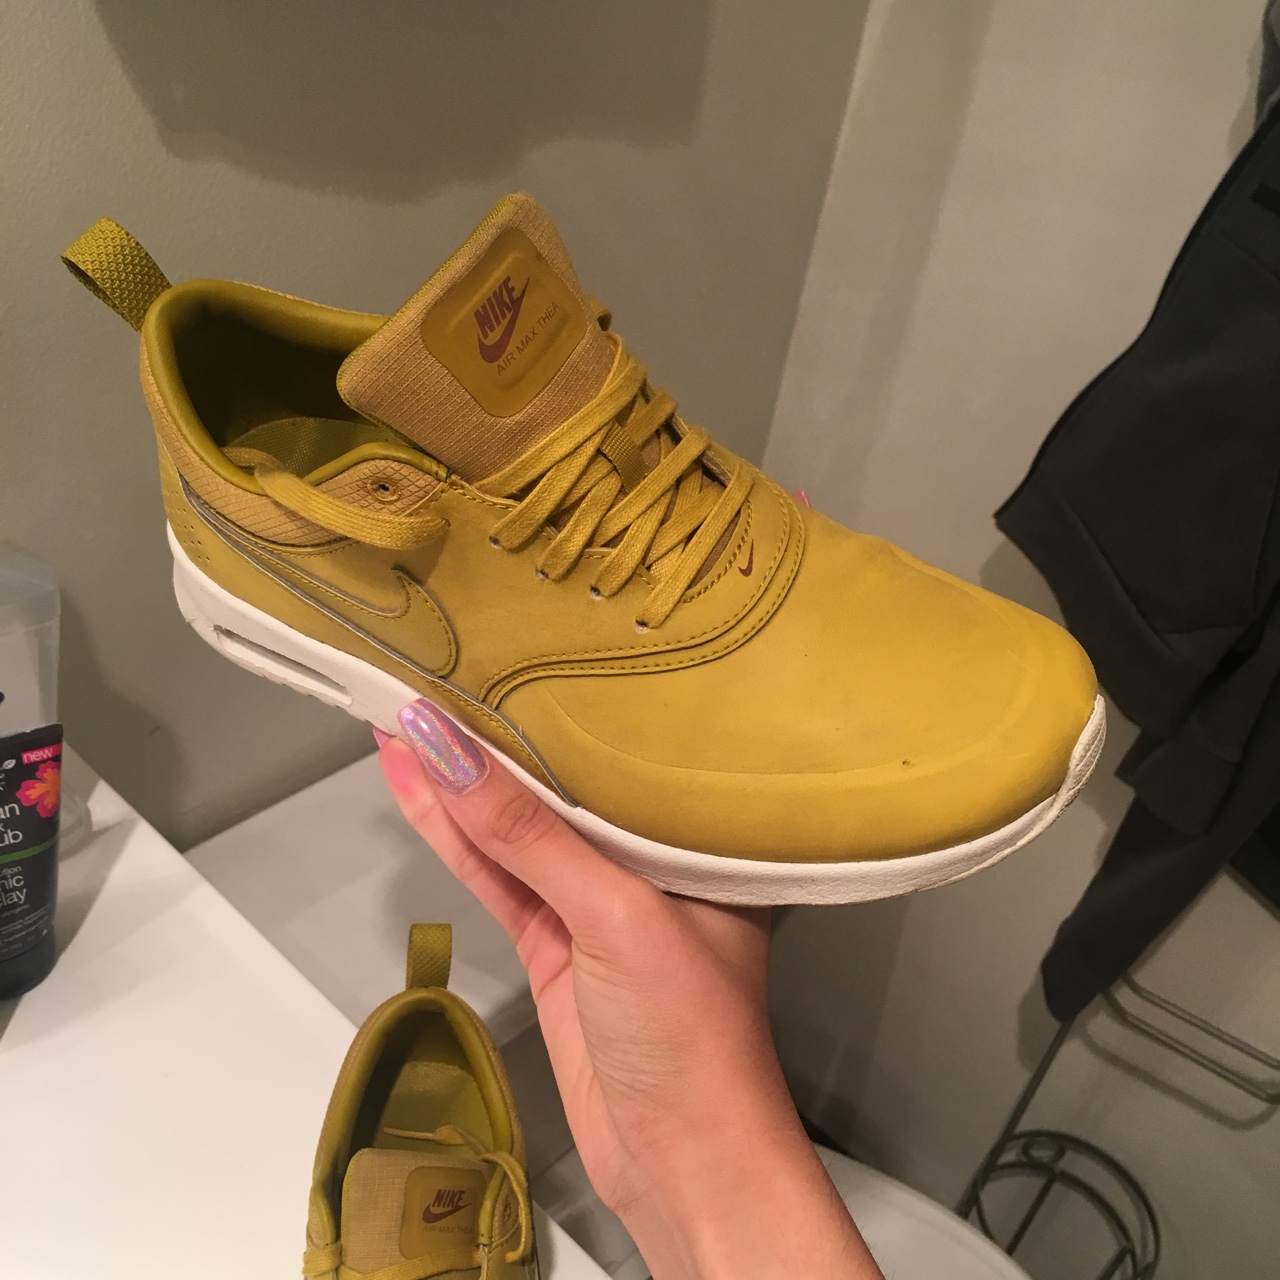 Nike air max Thea Beautiful mustard color I no Depop